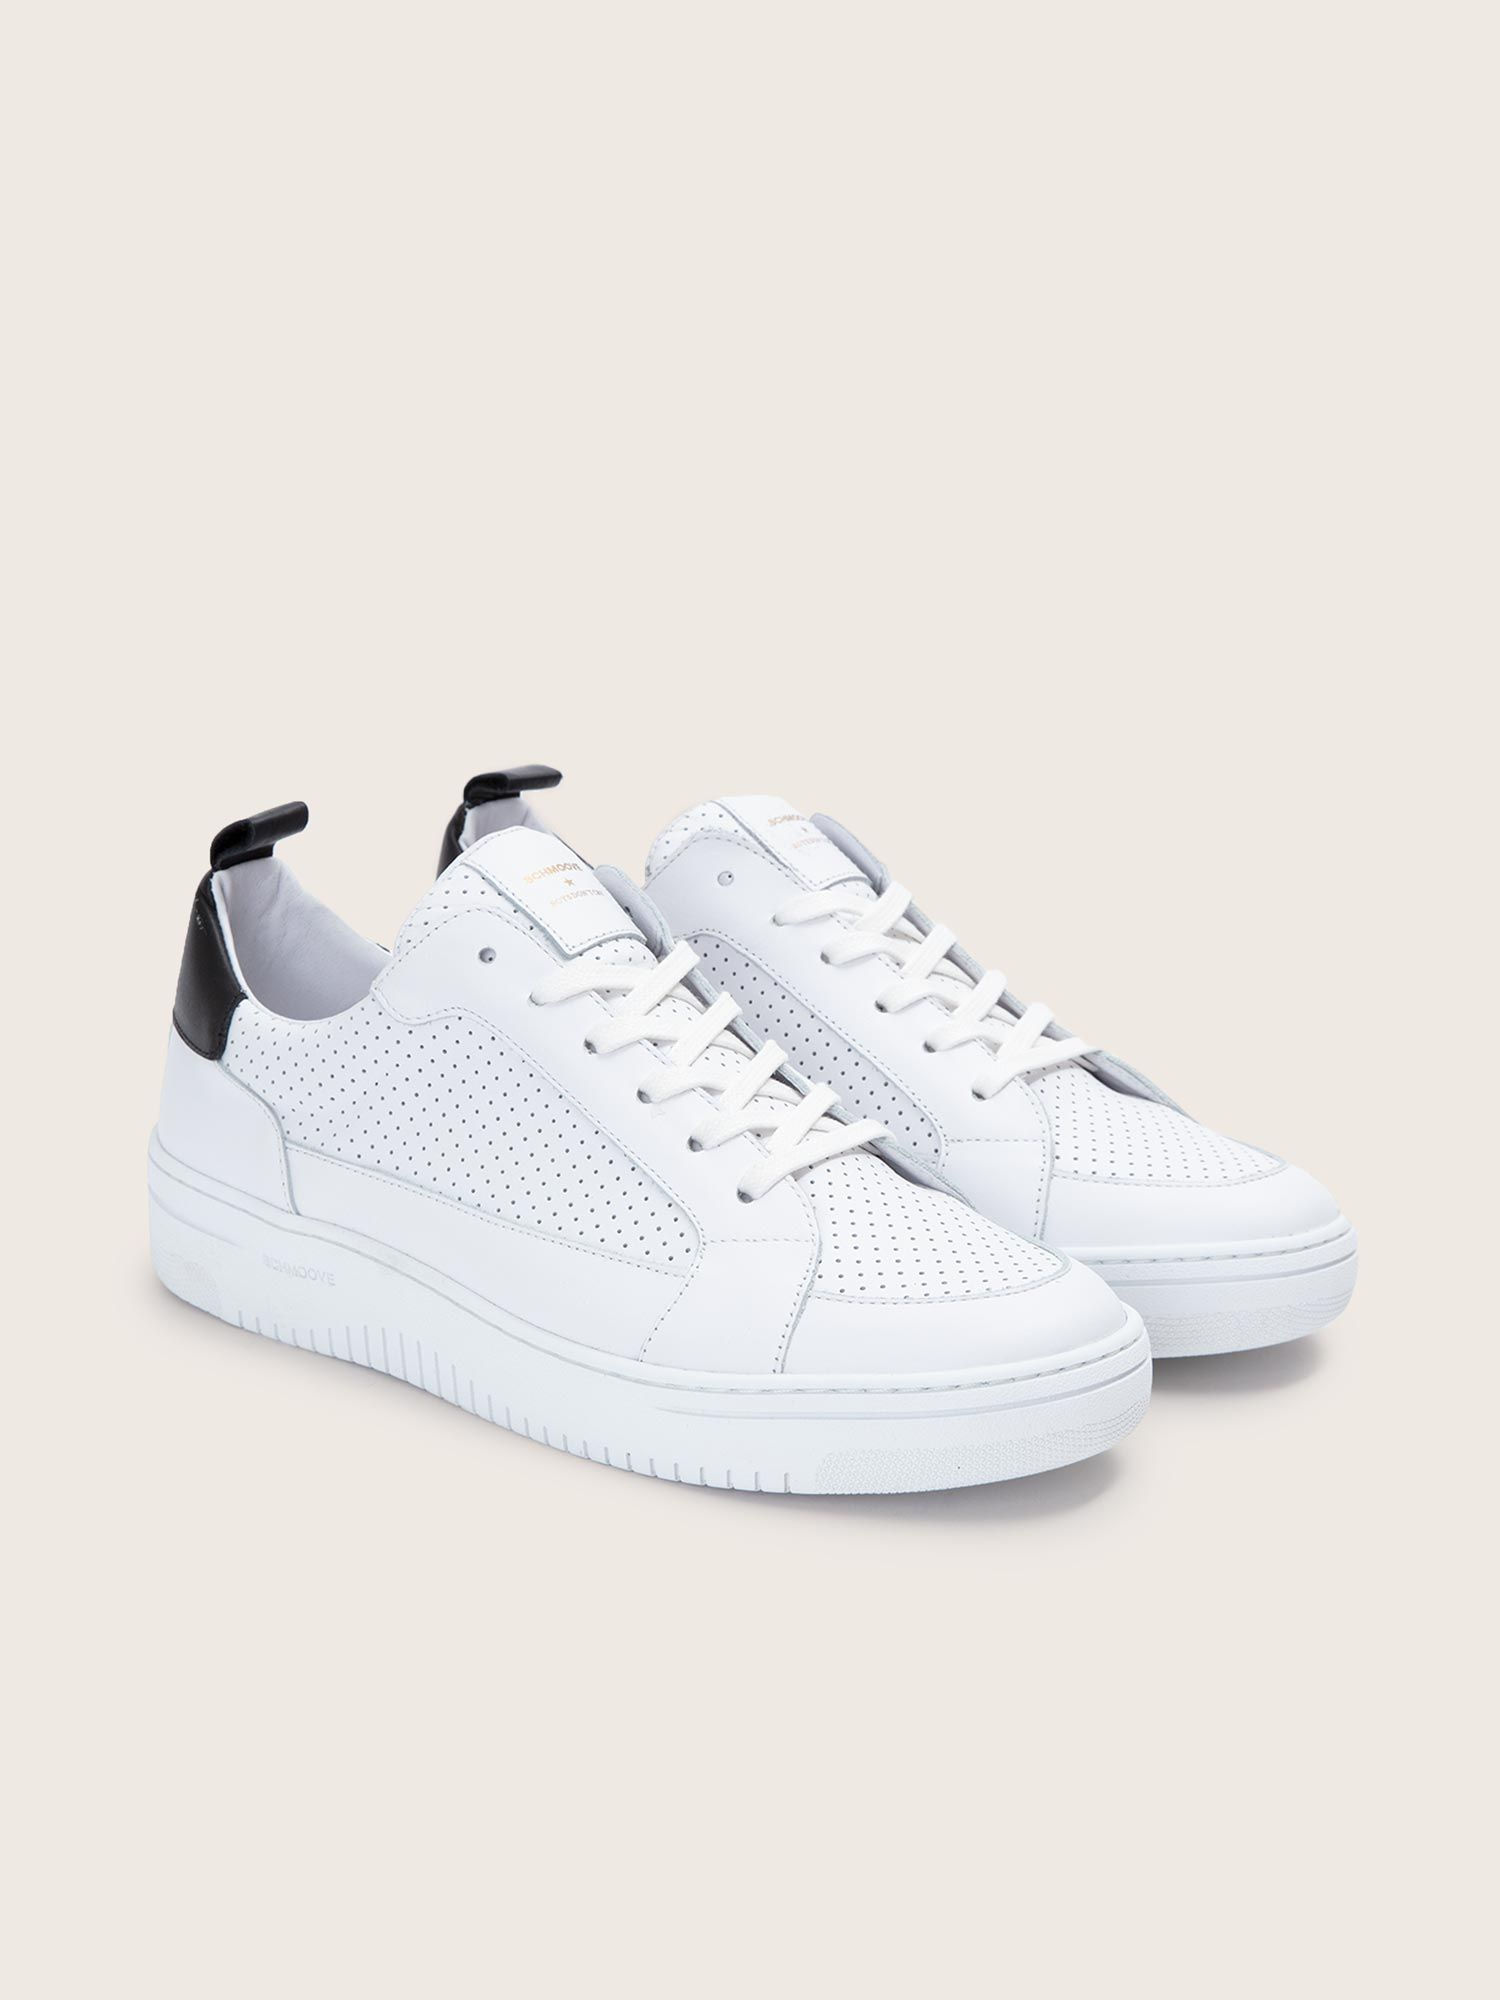 schmoove.fr Evoc Club - Punch Nap/Nappa - White/Black